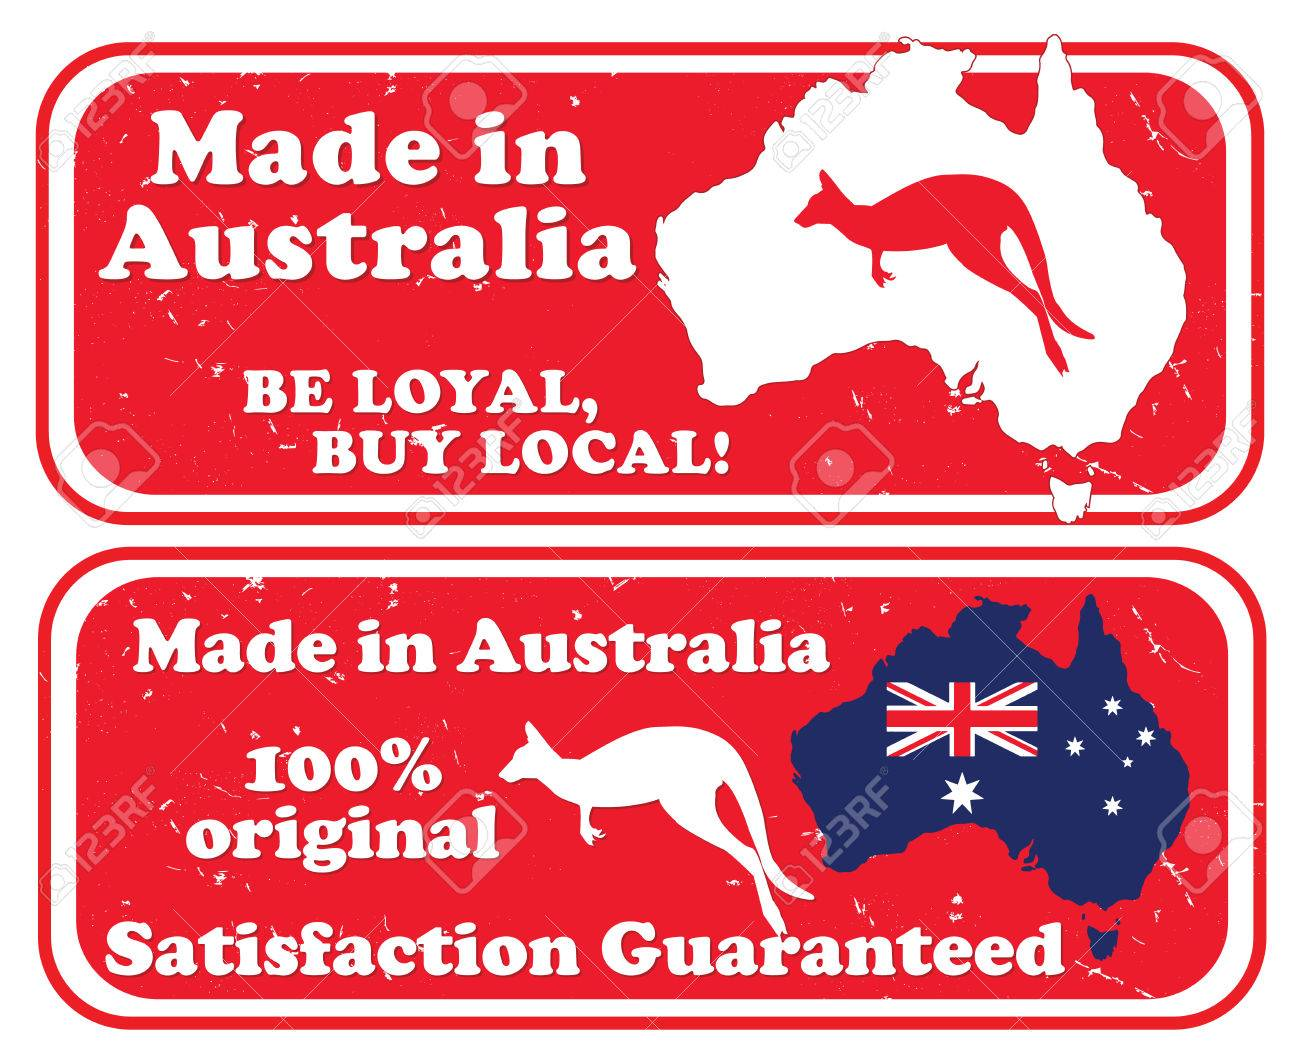 photo about Stamps Printable named Developed within Australia, Be faithful acquire neighborhood - grunge printable stamps